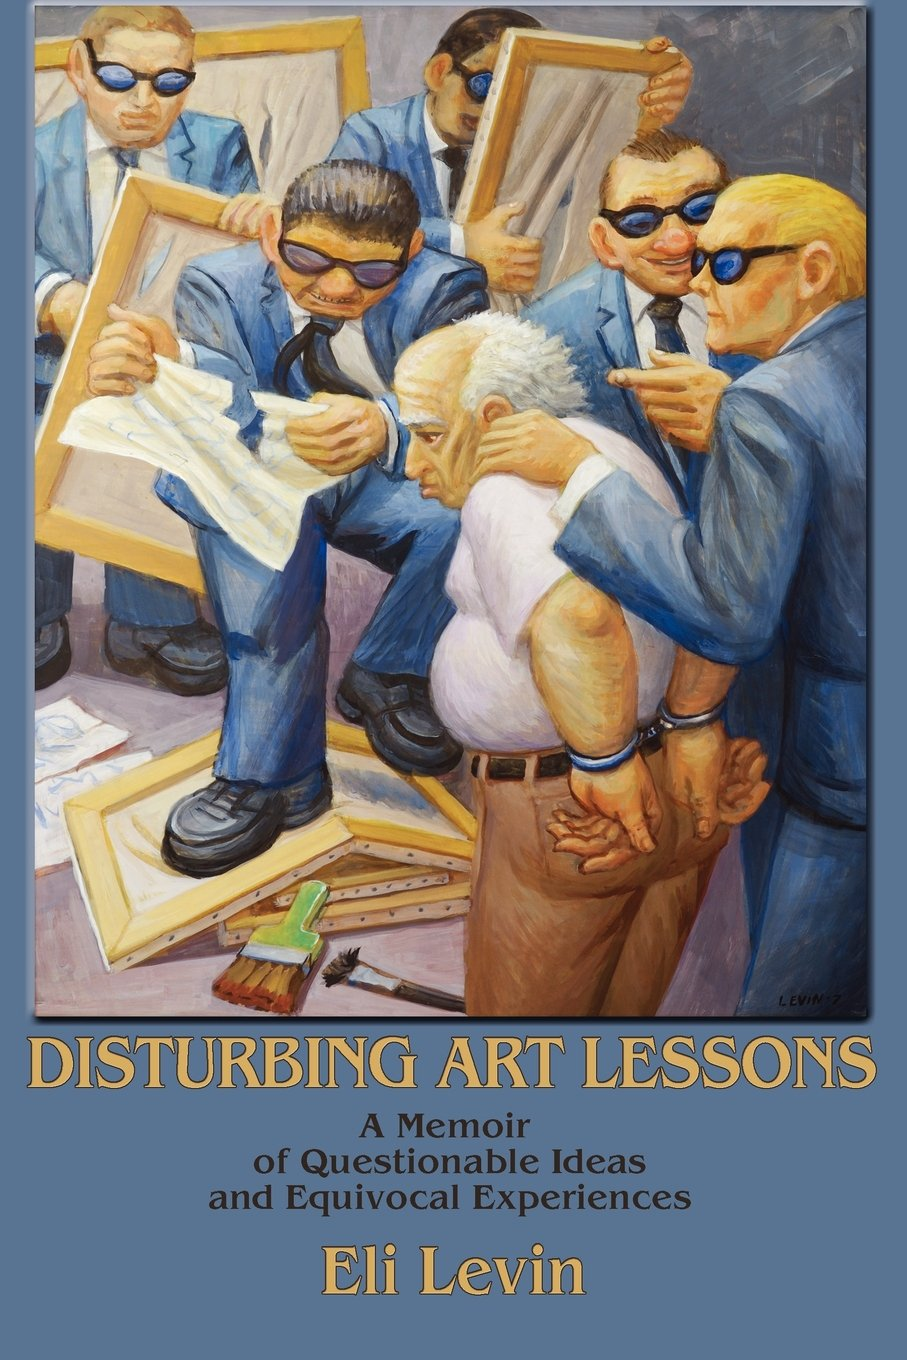 Disturbing Art Lessons, A Memoir of Questionable Ideas and Equivocal Experiences